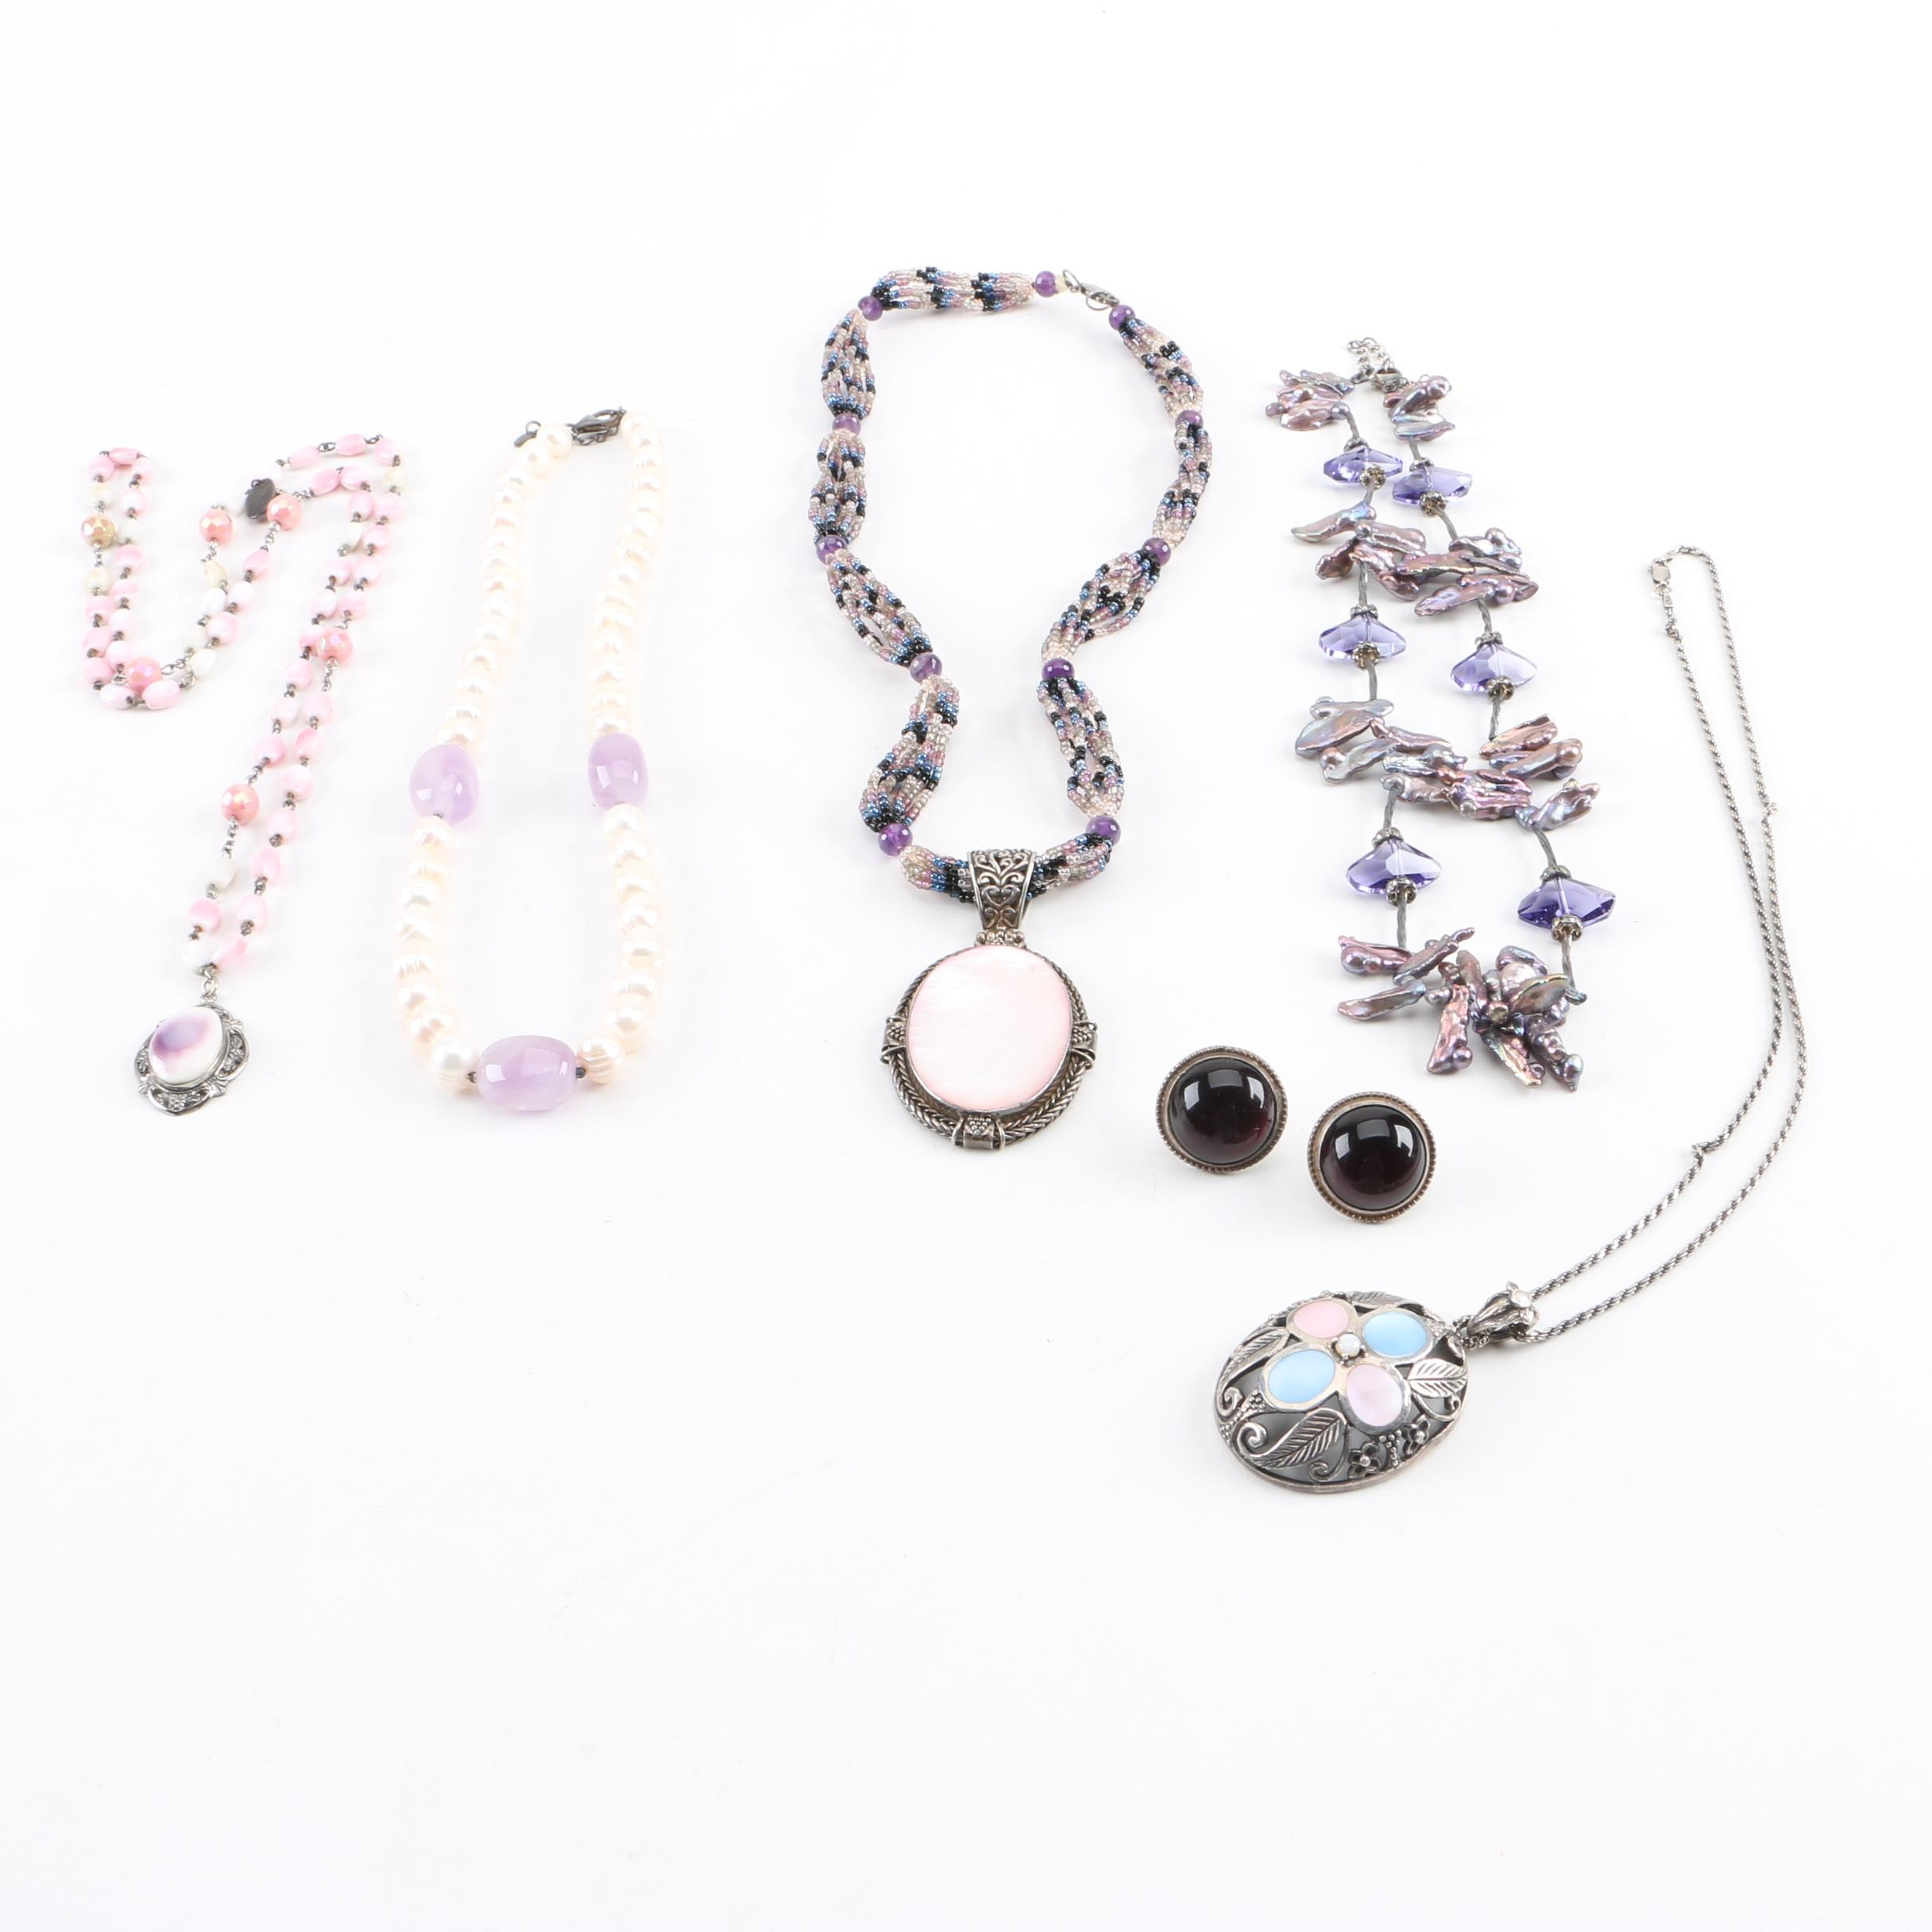 Sterling Silver Necklace and Earring Selection with Cultured Pearl and Amethyst